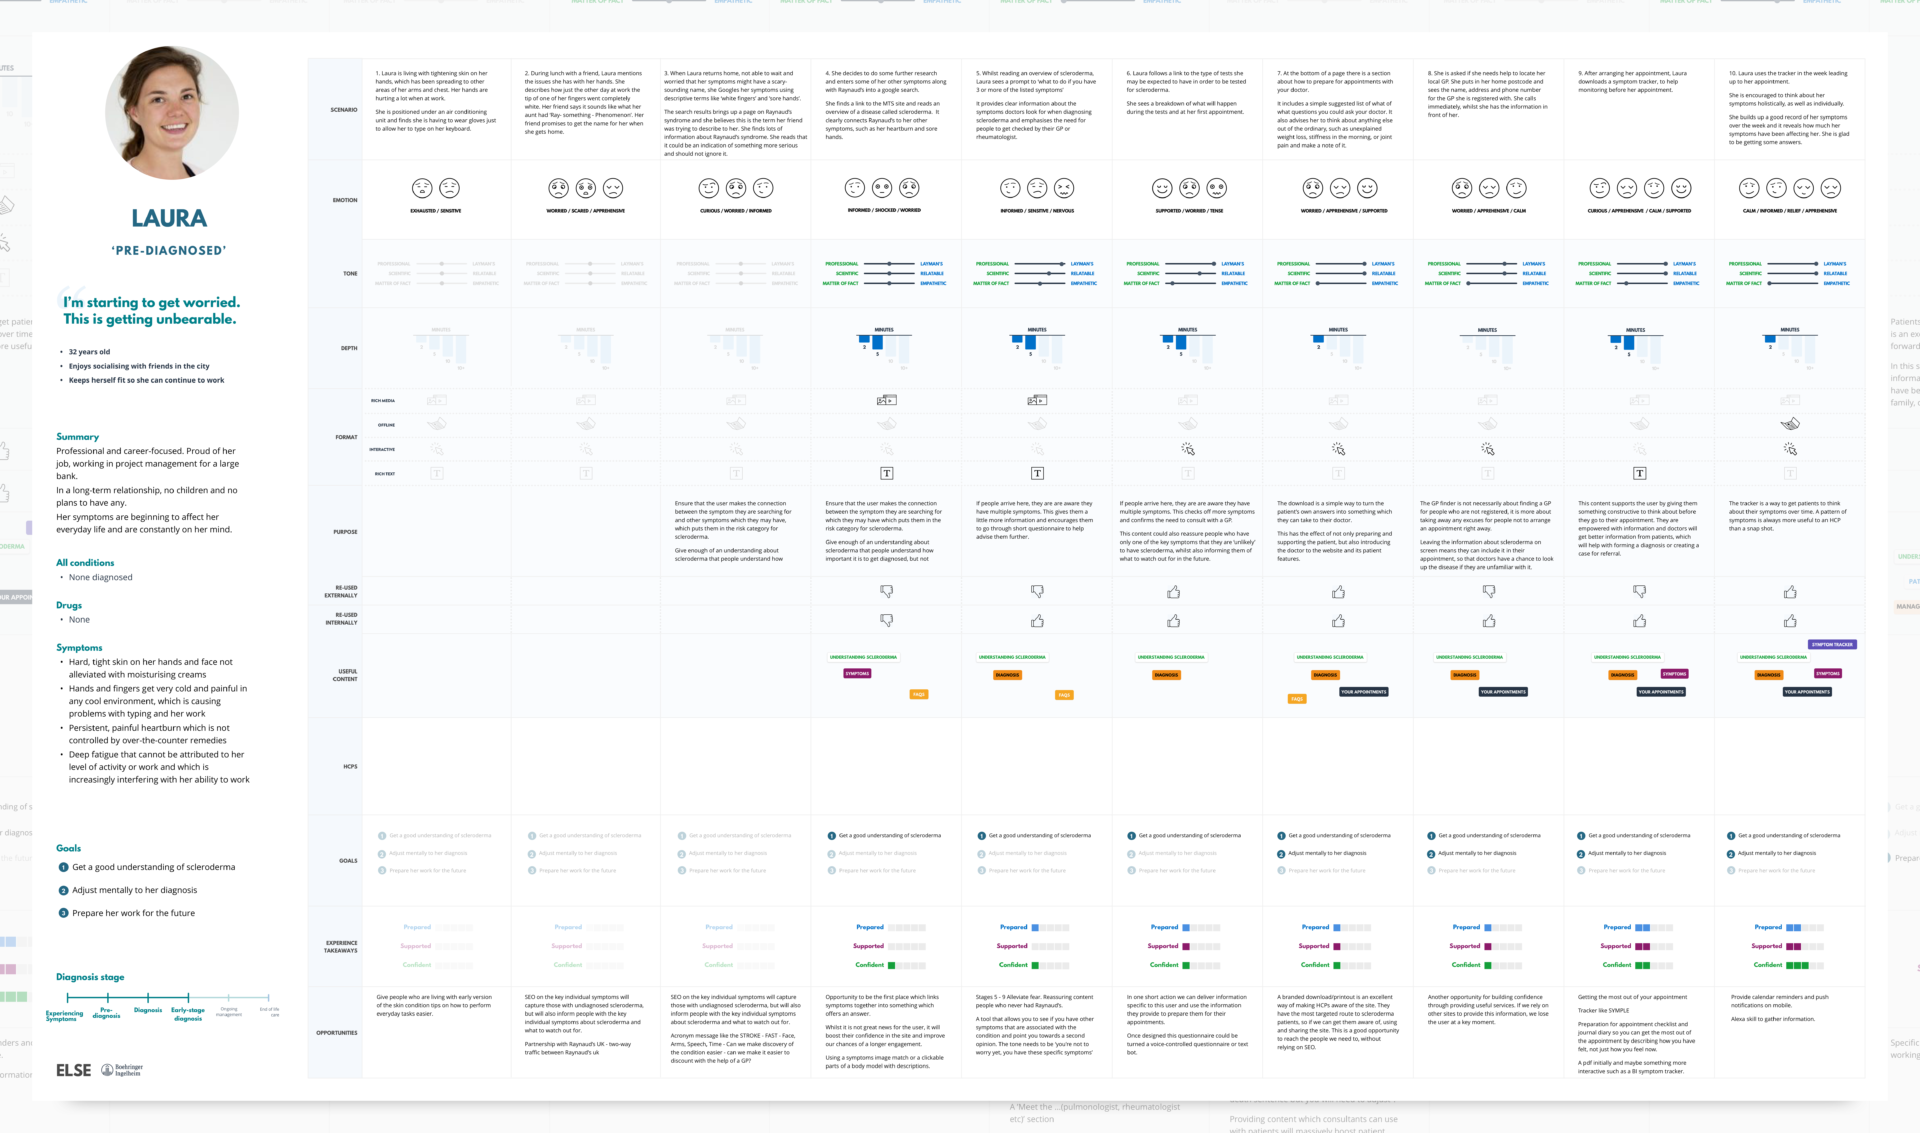 Charting the patient-centered journey